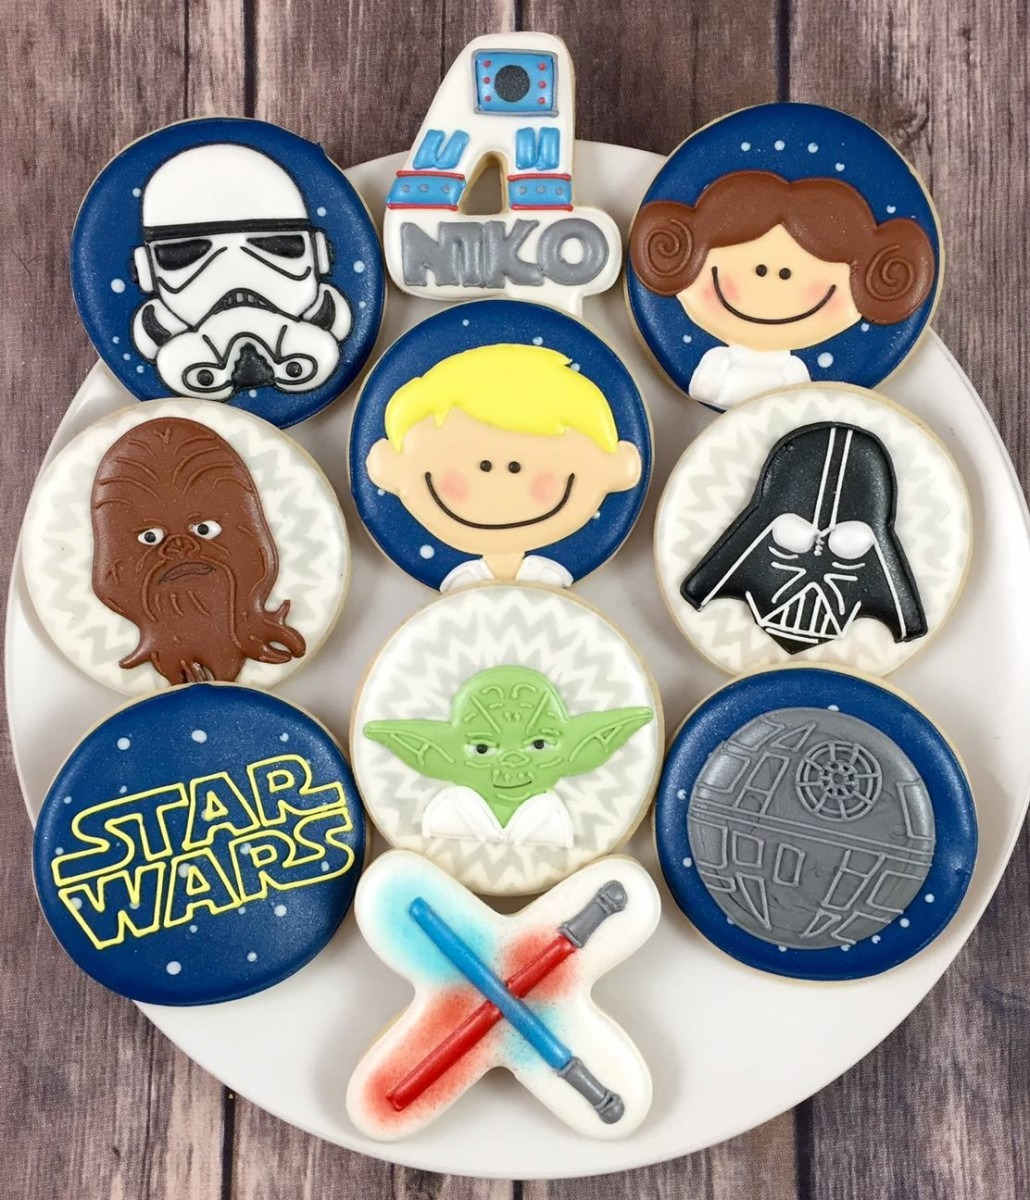 Star Wars Cookies …